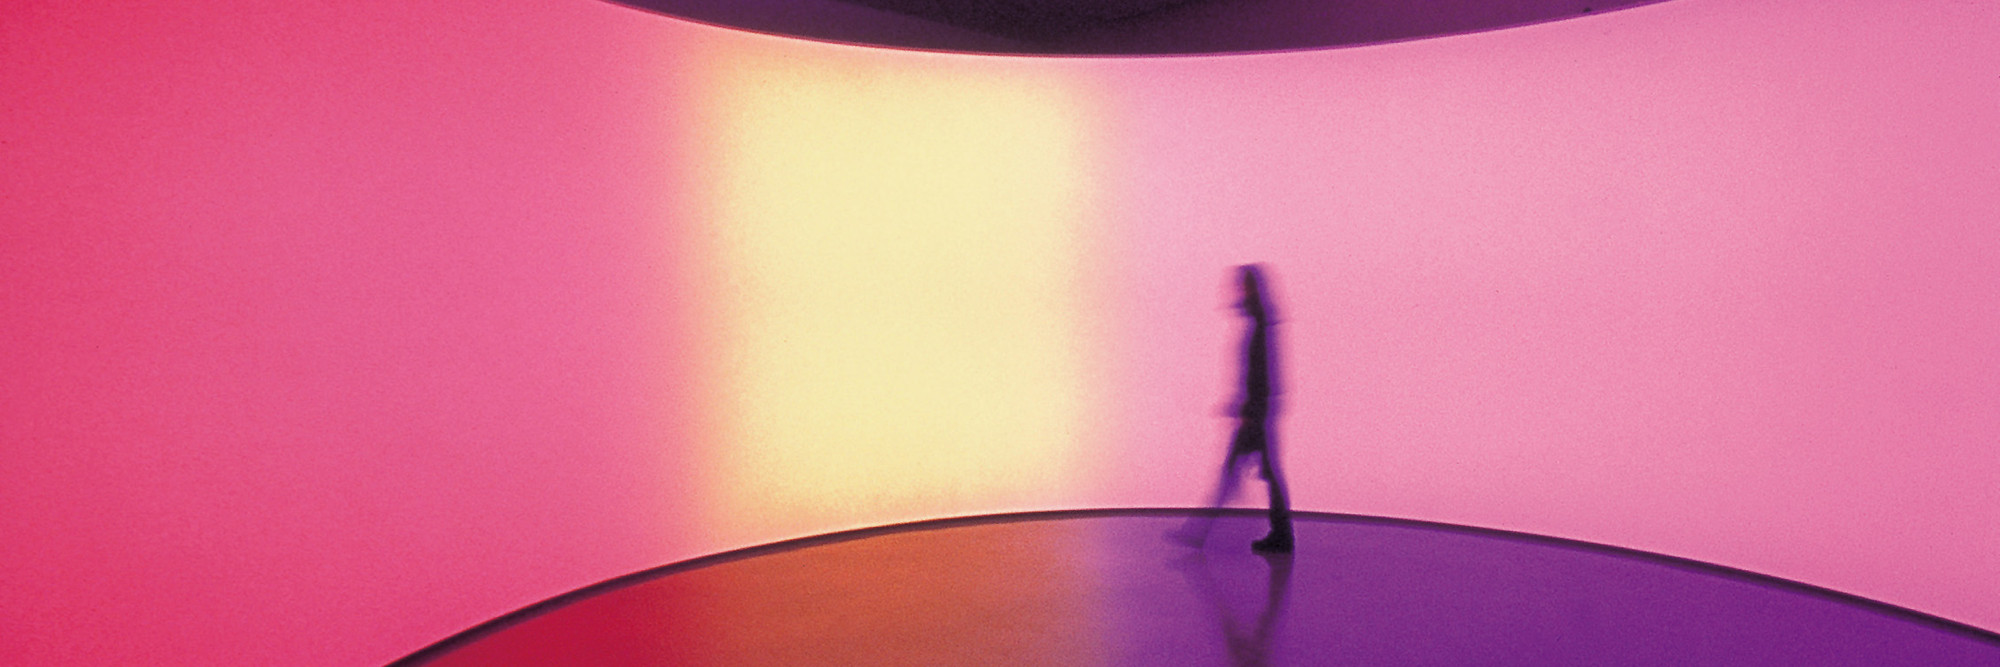 Olafur Eliasson. 360º room for all colours. 2002. Stainless steel, projection foil, fluorescent lights, wood, and control unit, 126 × 321 × 321″ (320 × 815.3 × 815.3 cm). Private collection. Installation view at Musée d'Art moderne de la Ville de Paris. Courtesy Tanya Bonakdar Gallery, New York. © 2008 Olafur Eliasson